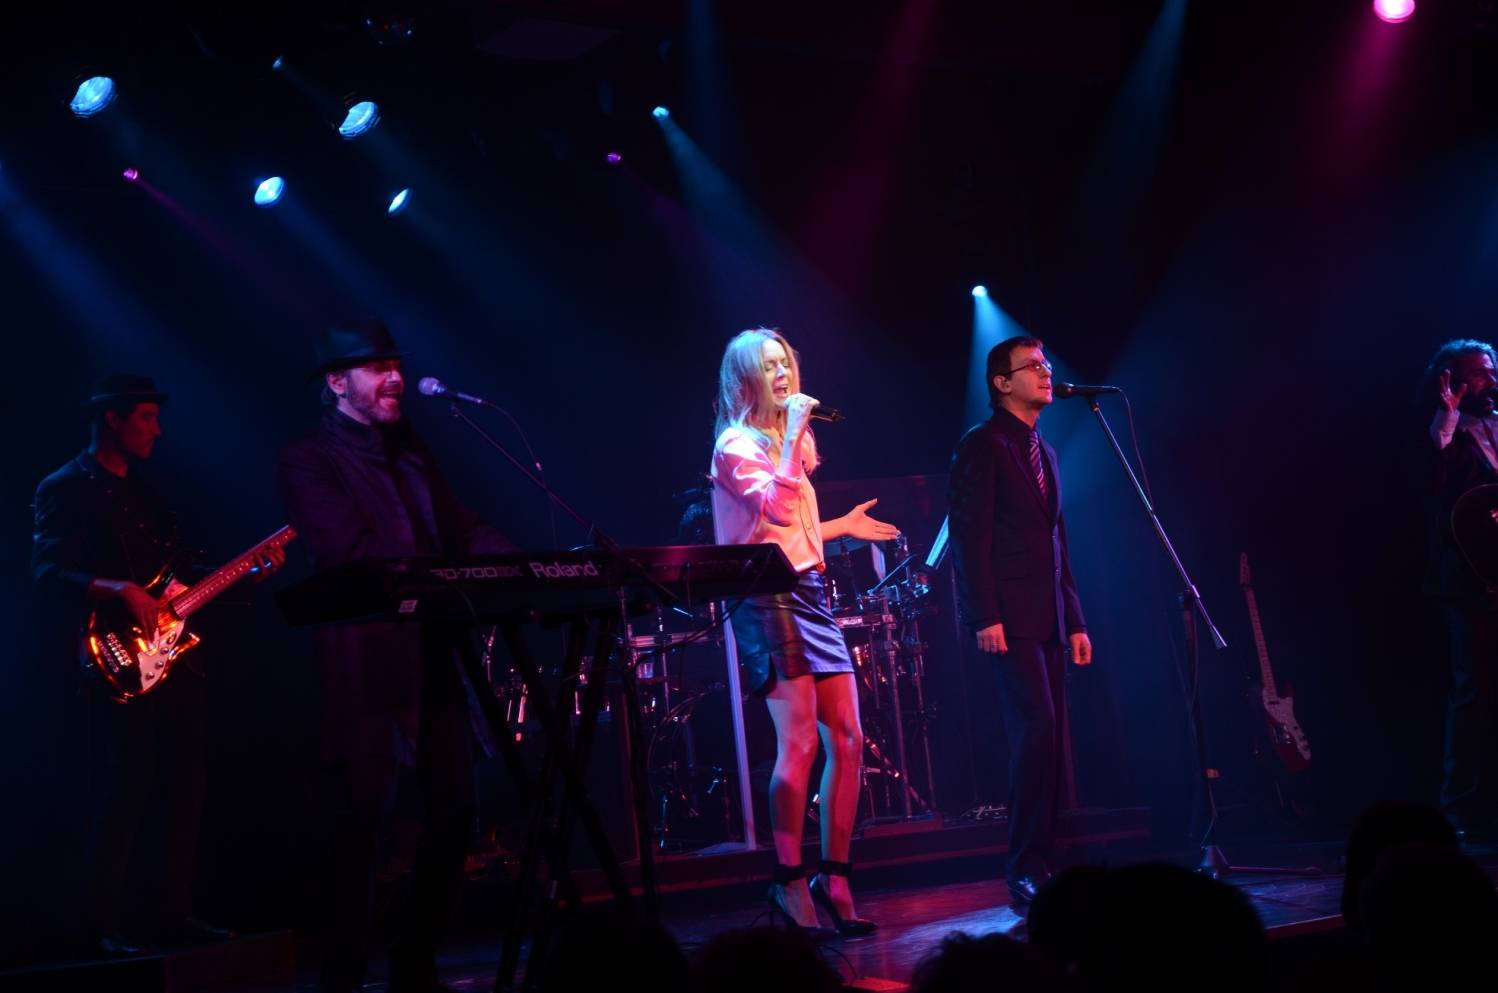 Veronic DiCaire performs Immortality with the Australian Bee Gees Show 4